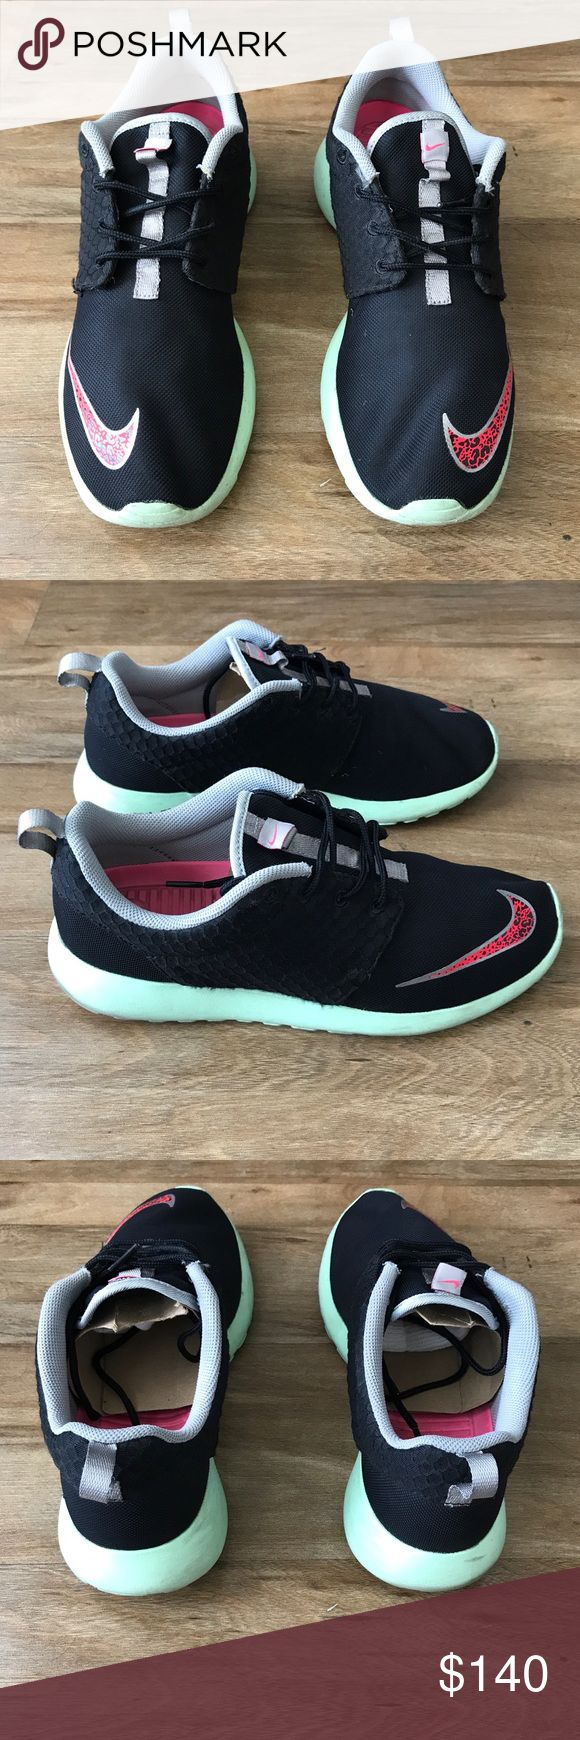 Nike Yeezy Roshe Run In GREAT CONDITION, just need a quick clean. You'll love these. They look great with every outfit. Nike Shoes Sneakers